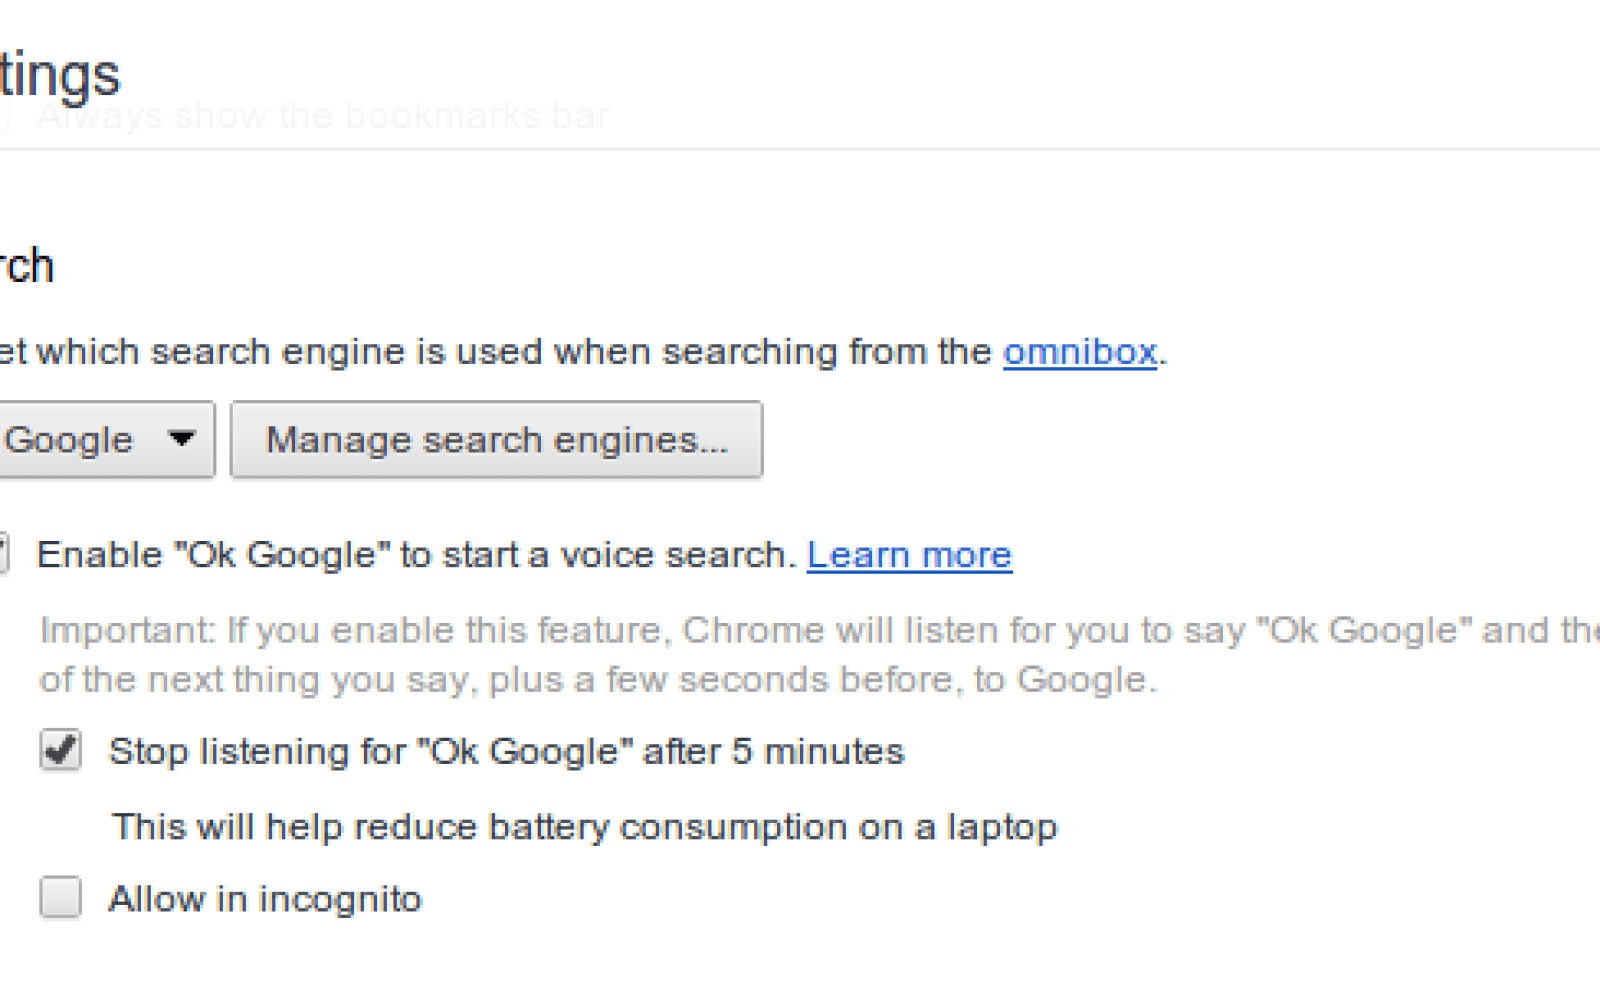 Ok Google' voice search arrives as native Chromium feature